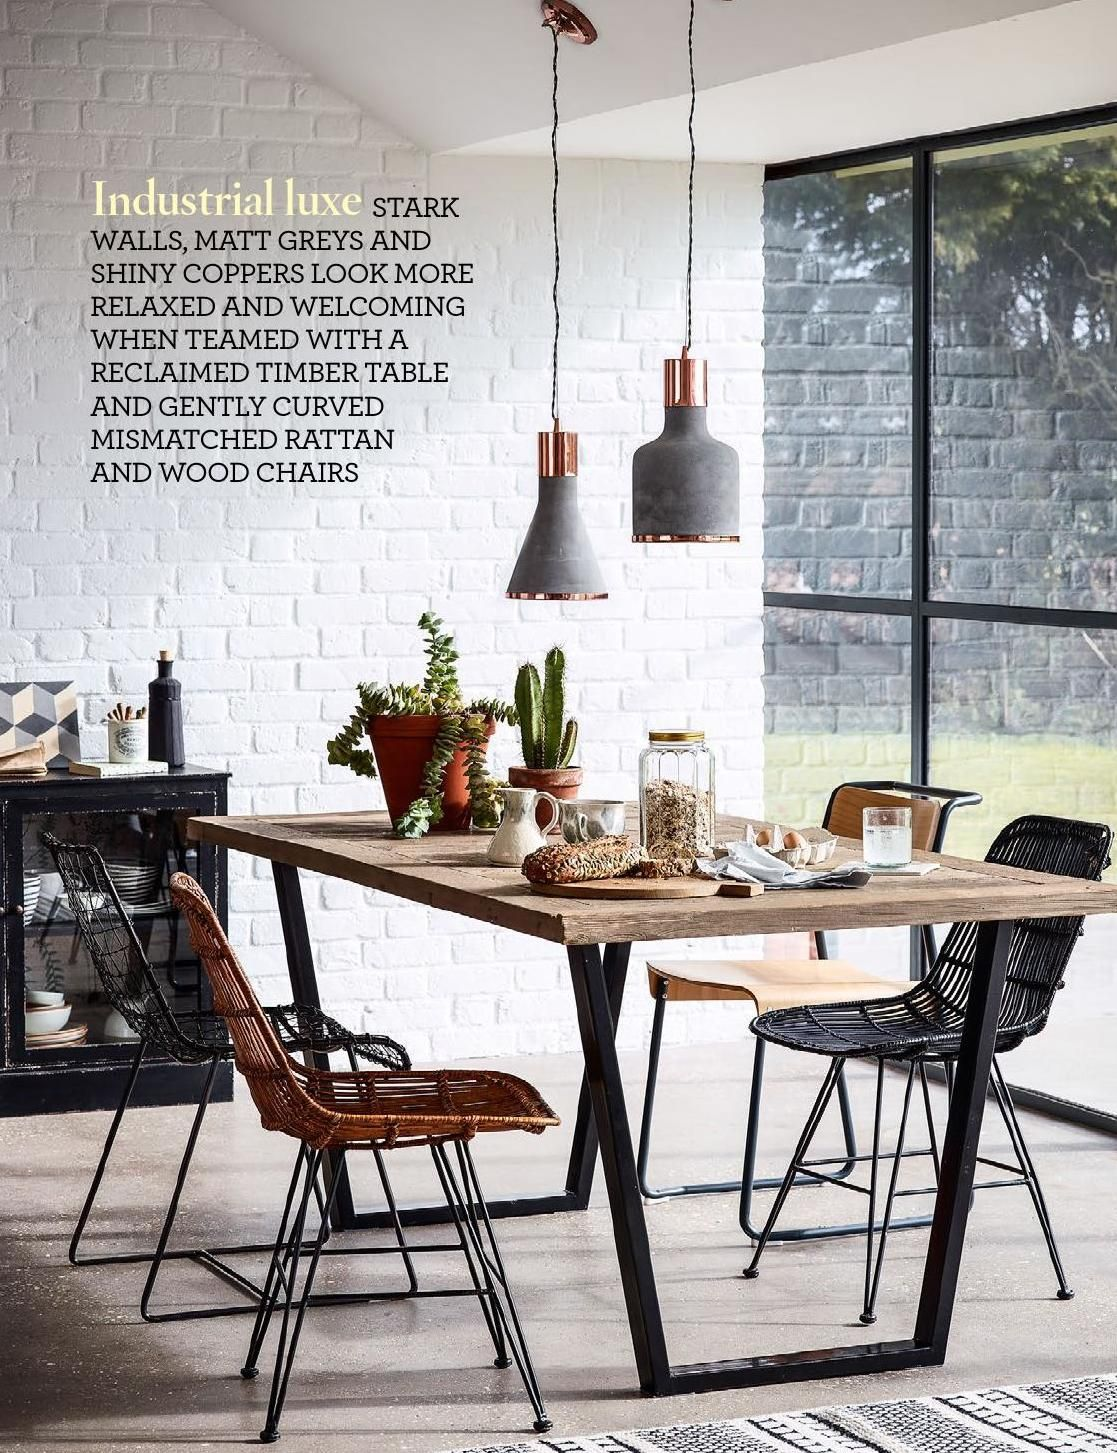 industrial dining room table and chairs. Dining Room Furnished In A Modern Style - Living Ideas And Interior Design Tips, If You Are Planning To Renovate Your Home Or Set Up New Home, Industrial Table Chairs